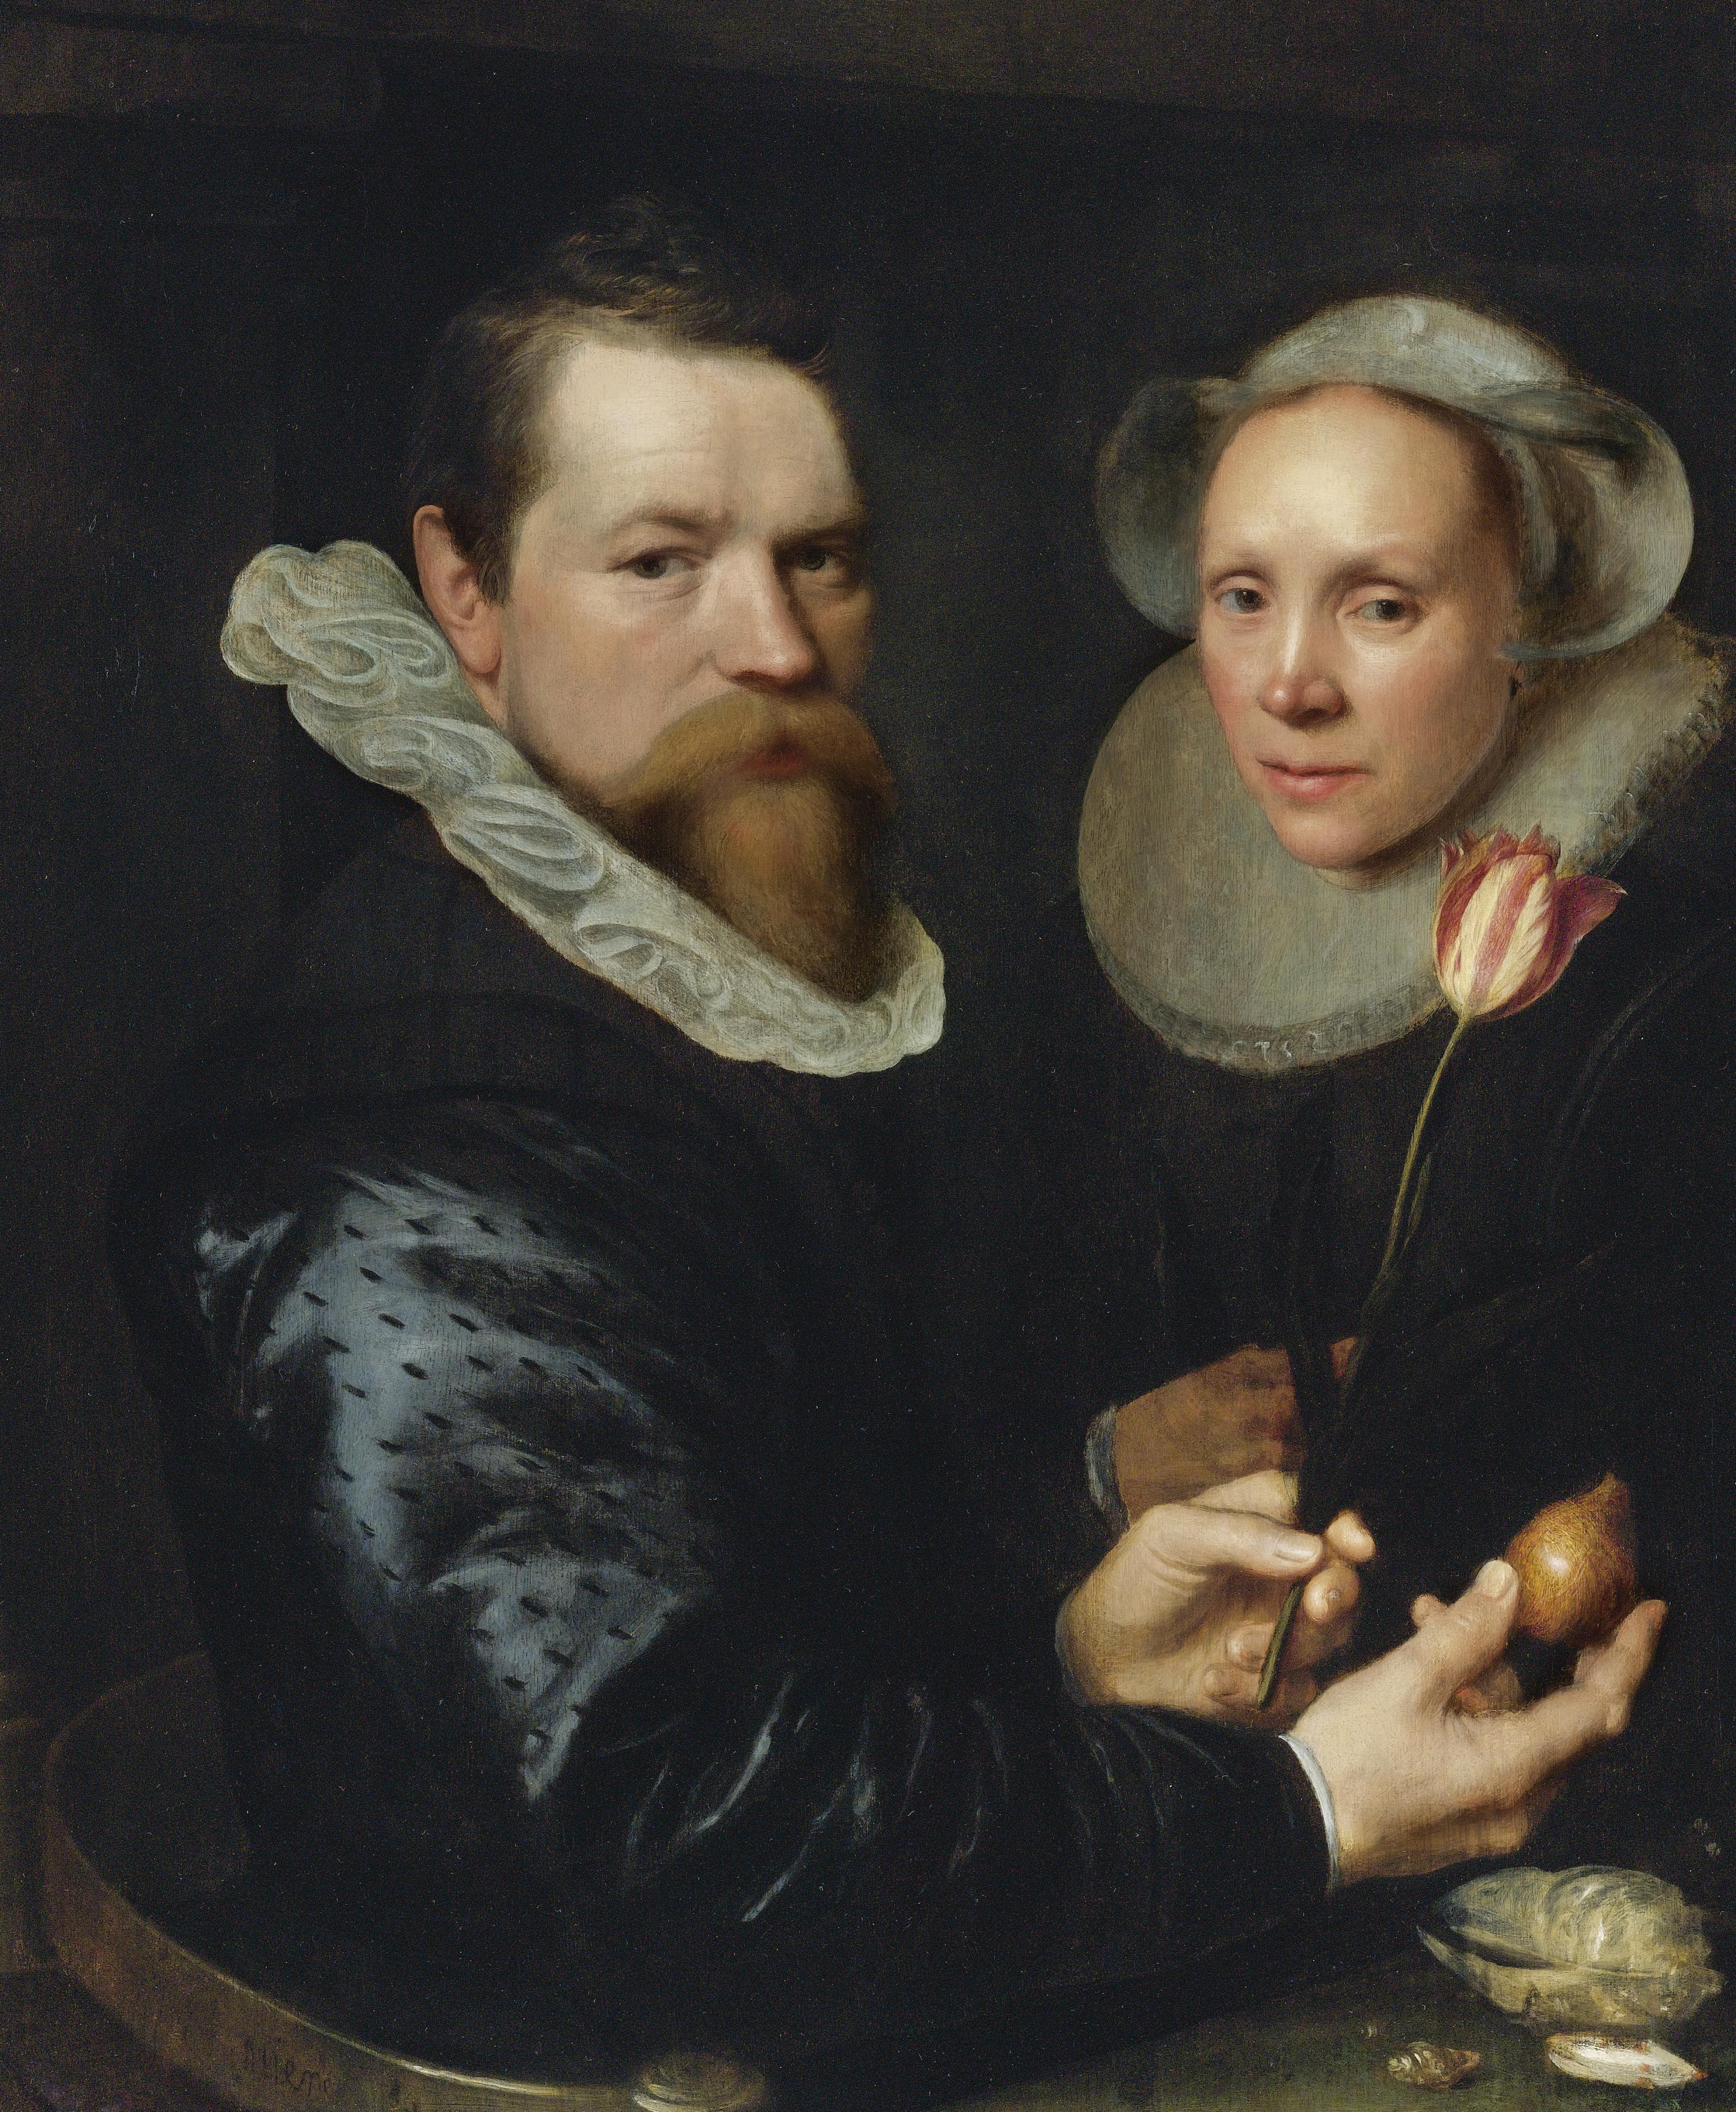 Double Portrait of a Husband and Wife with Tulip, Bulb, and Shellsoil on panel painting by Michiel Jansz van Mierevelt, 1609 Sotheby's